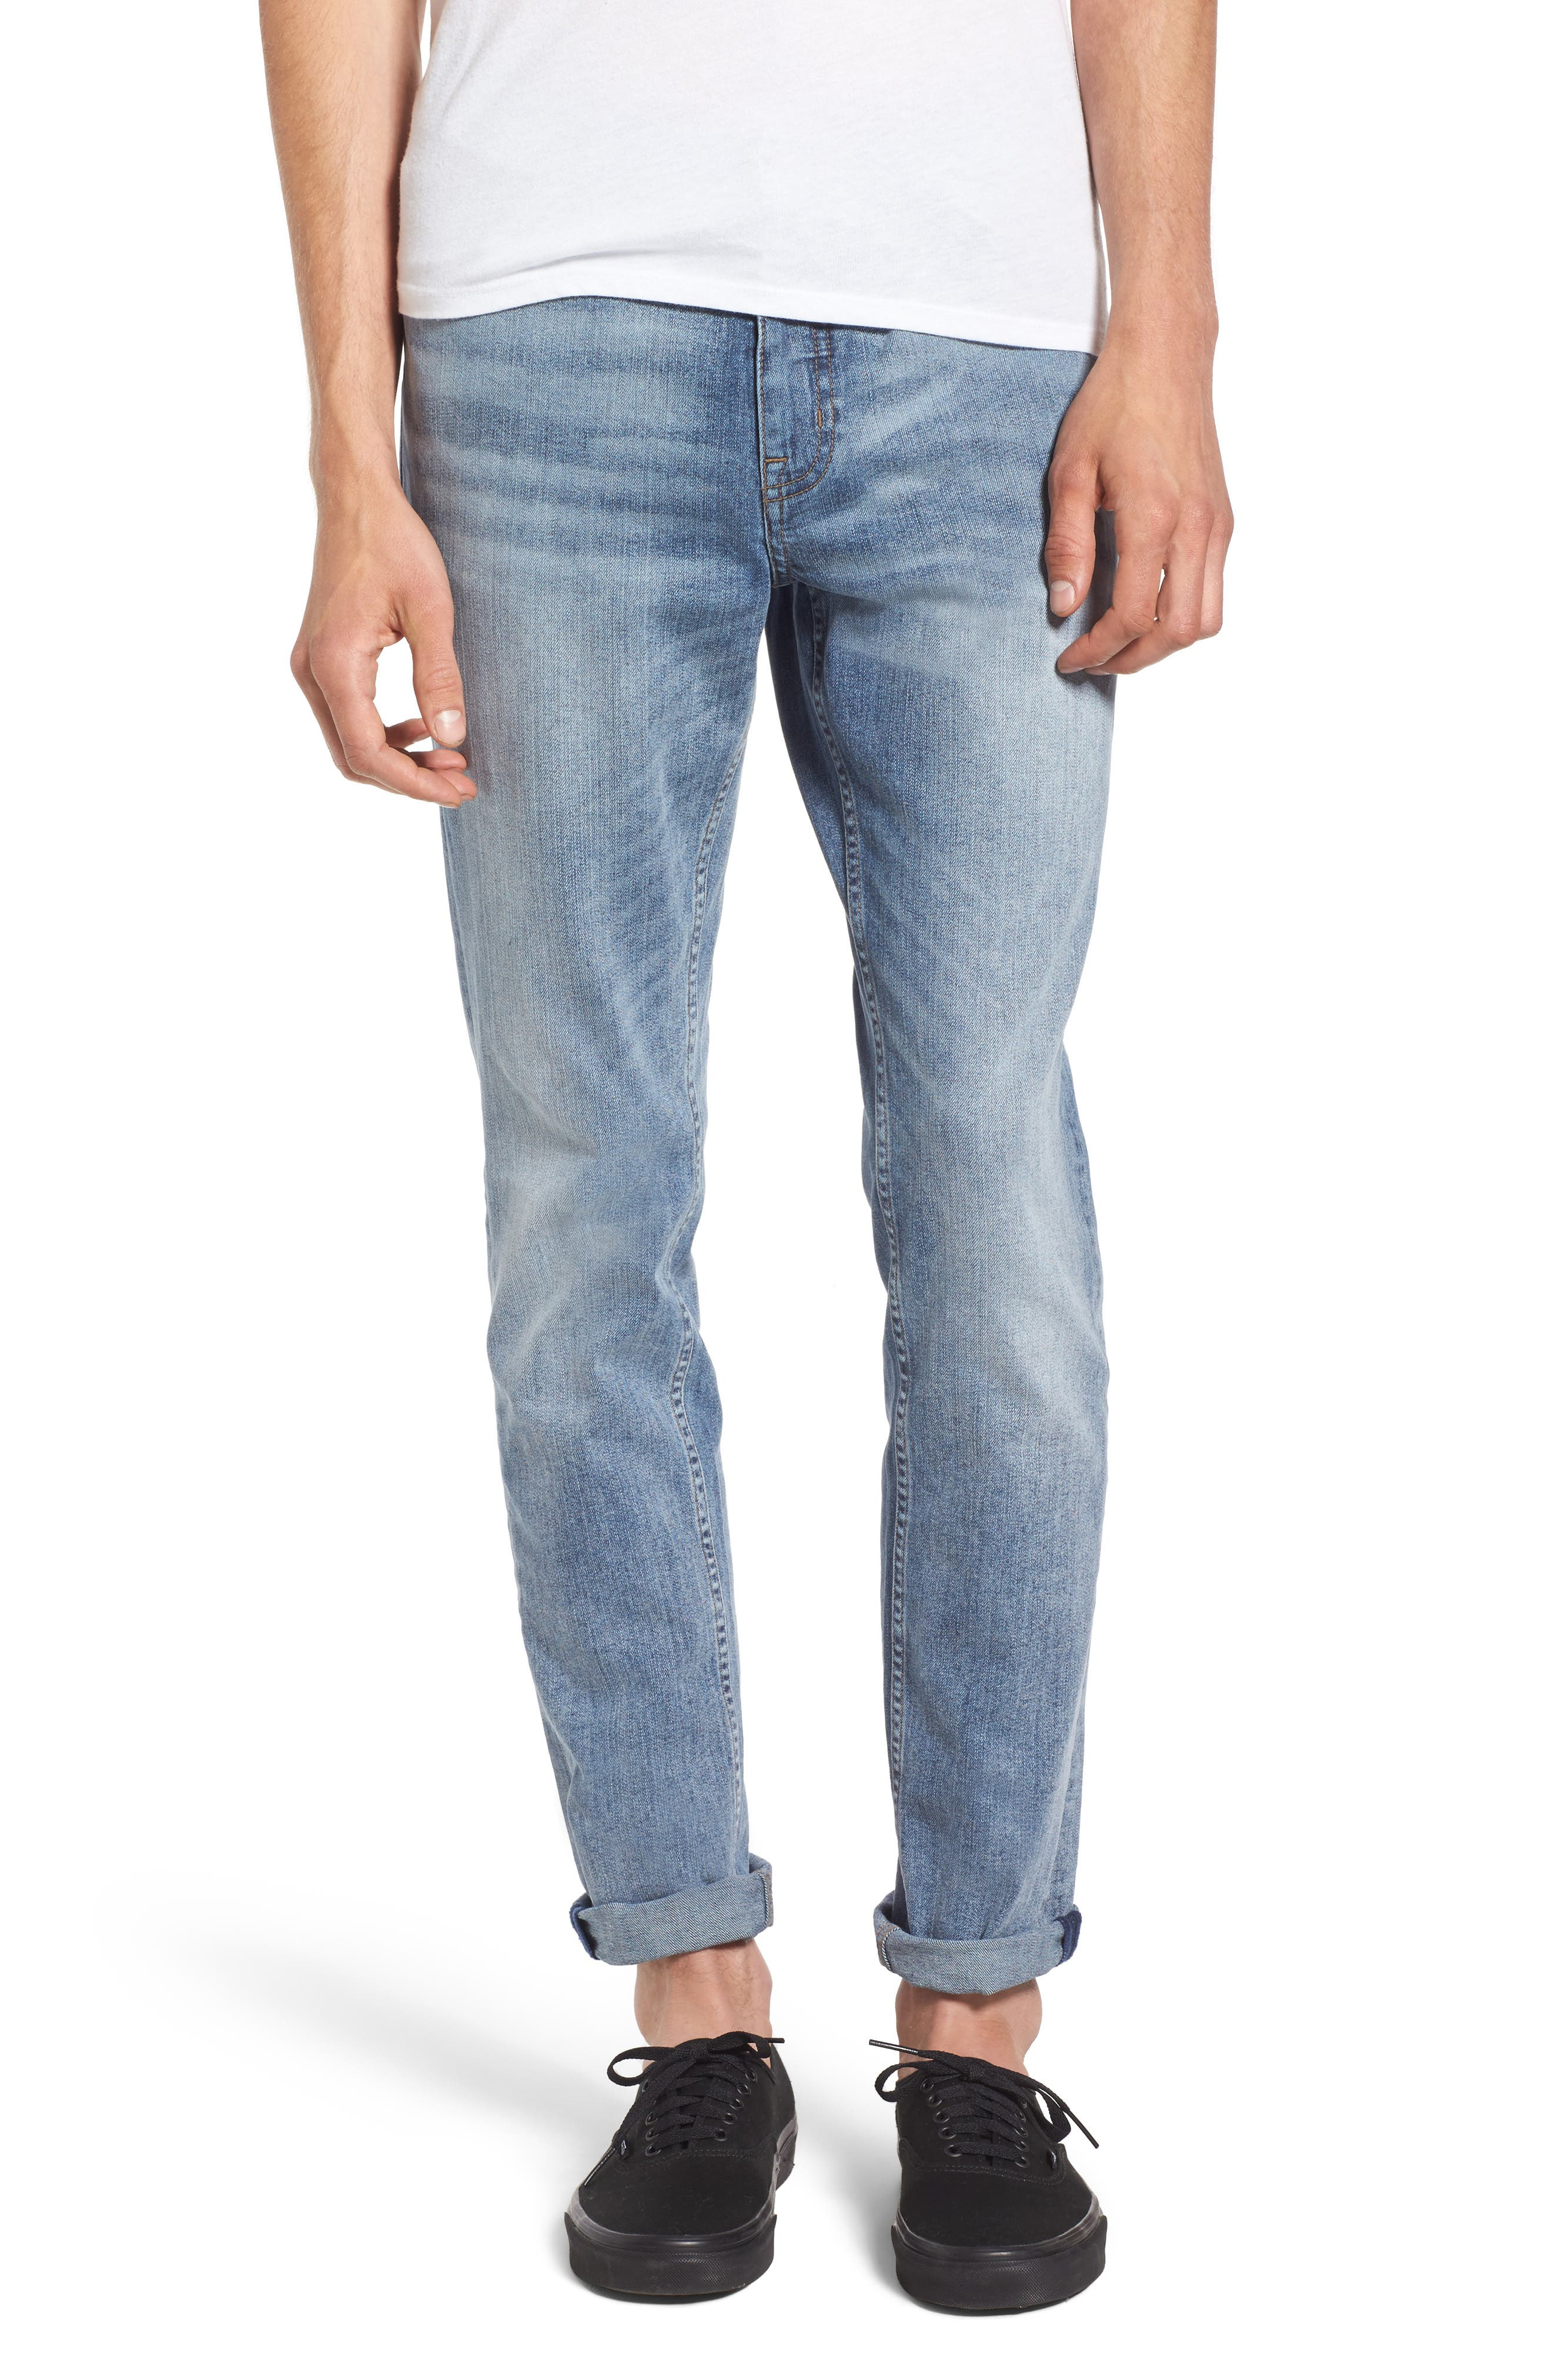 Sonic Skinny Fit Jeans,                         Main,                         color, 458